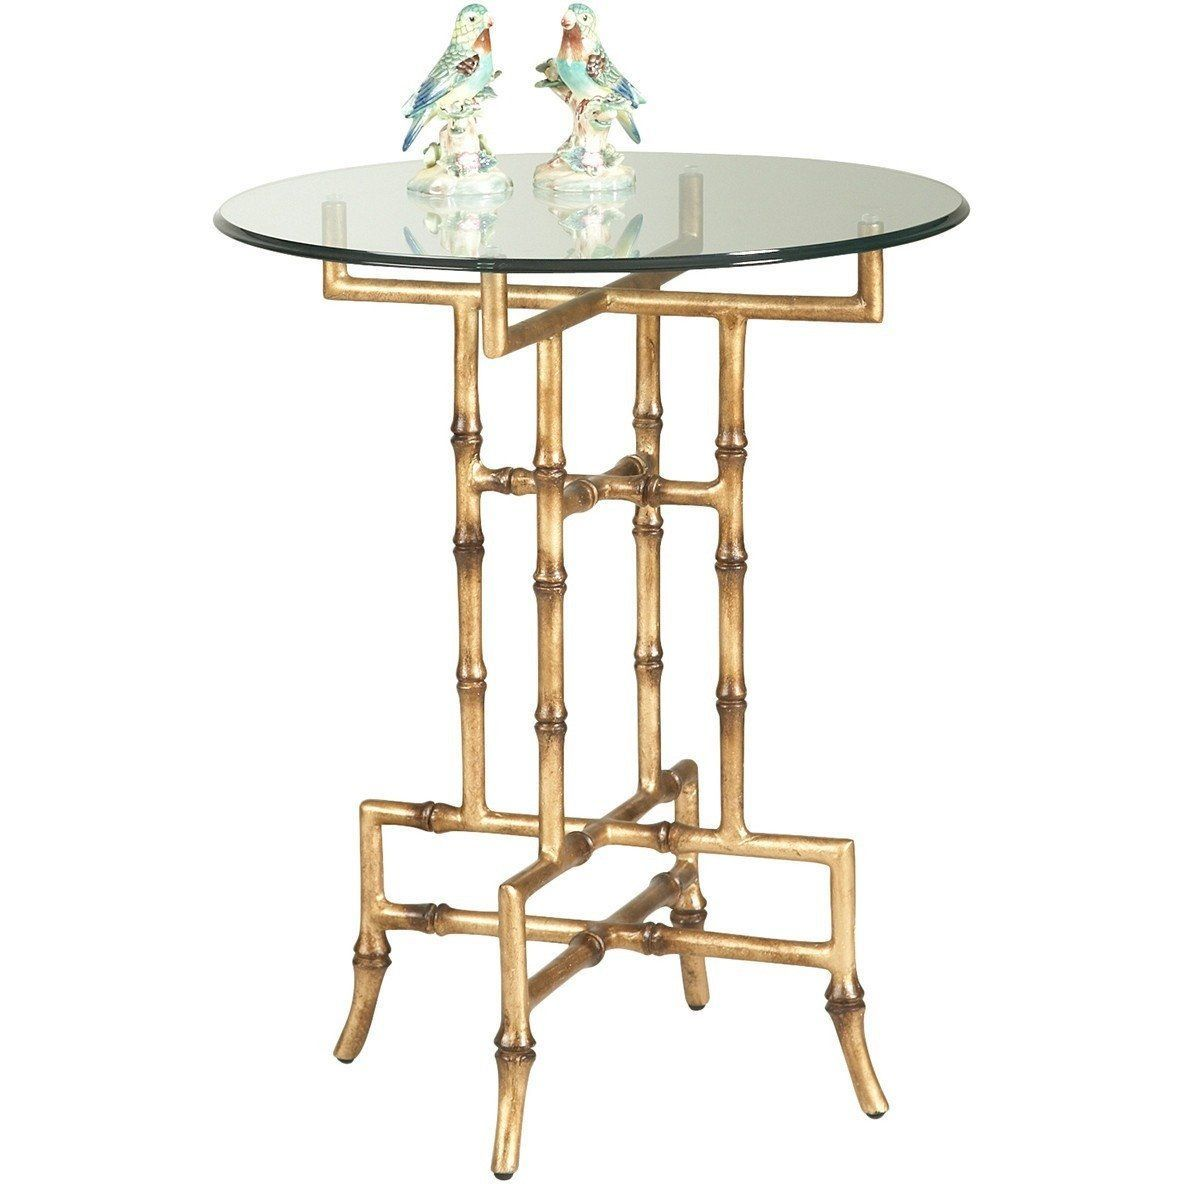 chelsea house camrose antique gold accent table lovecup dining mirimyn extra long runners with wheels inch pottery barn tablecloths bathtub patio garden cordless lamps side cloth